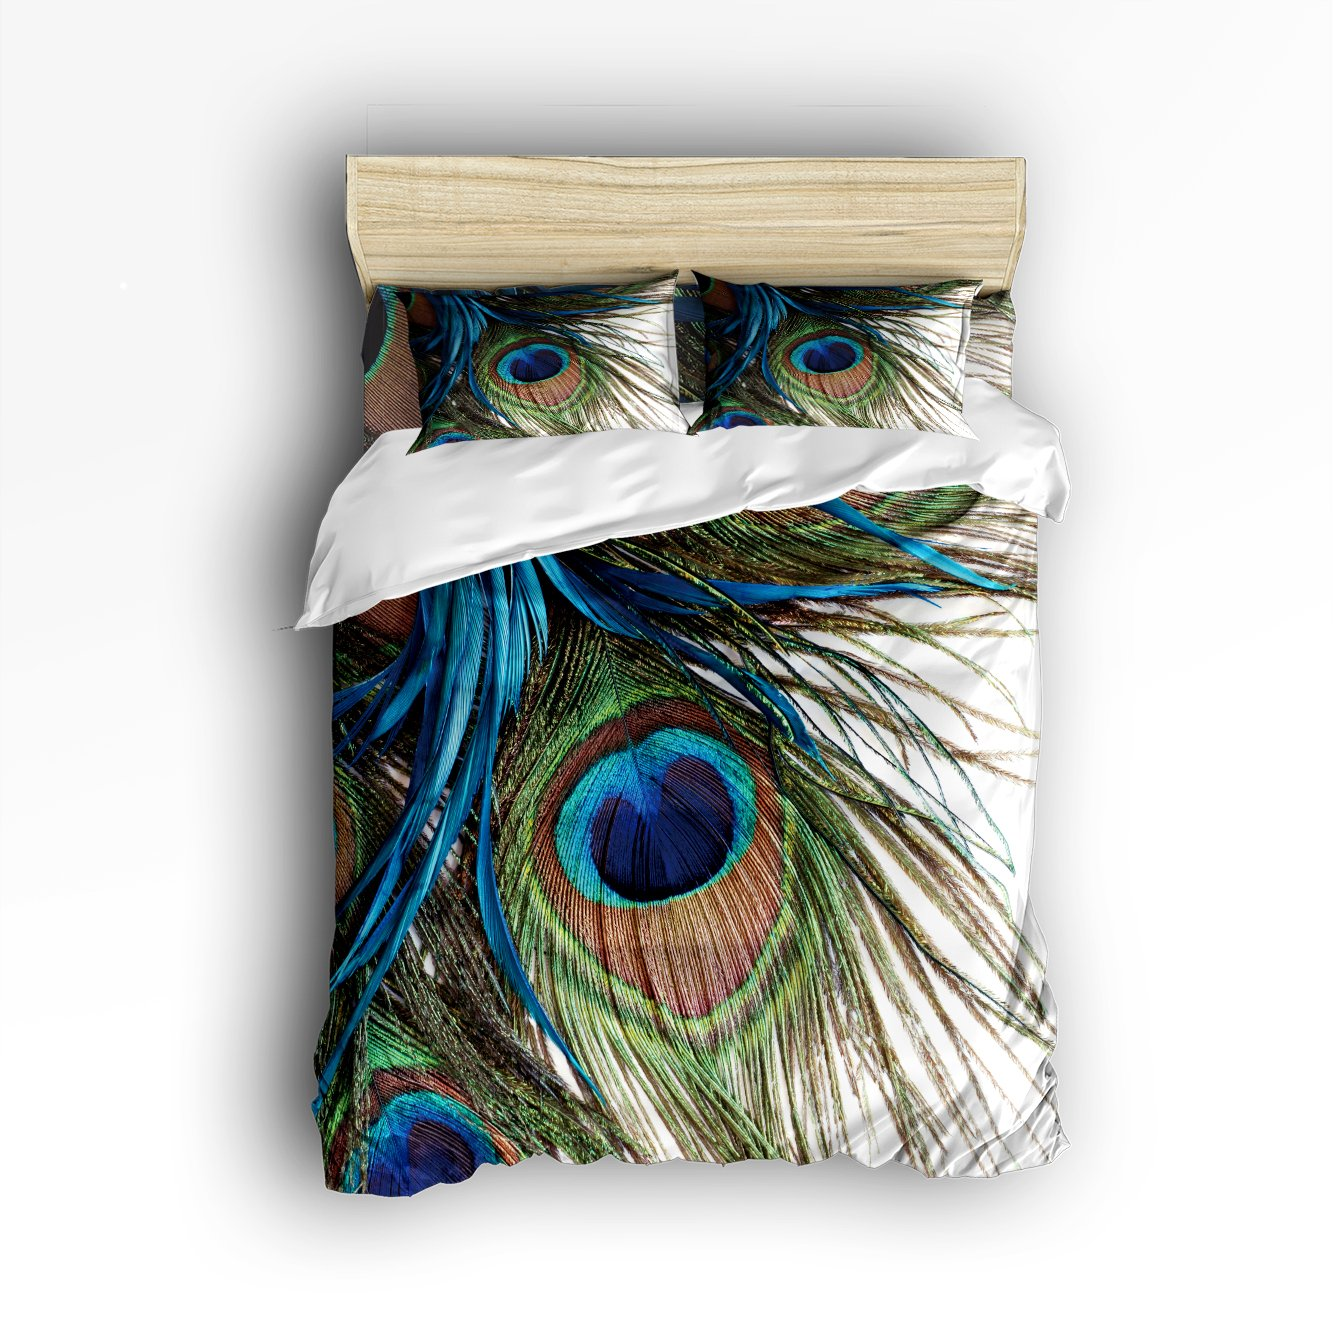 Peacock Pattern Bedding Set- Full Size ,Animal Print Duvet Cover Set Bedspread for Childrens/Kids/Teens/Adults, 4 Piece 100 % Cotton